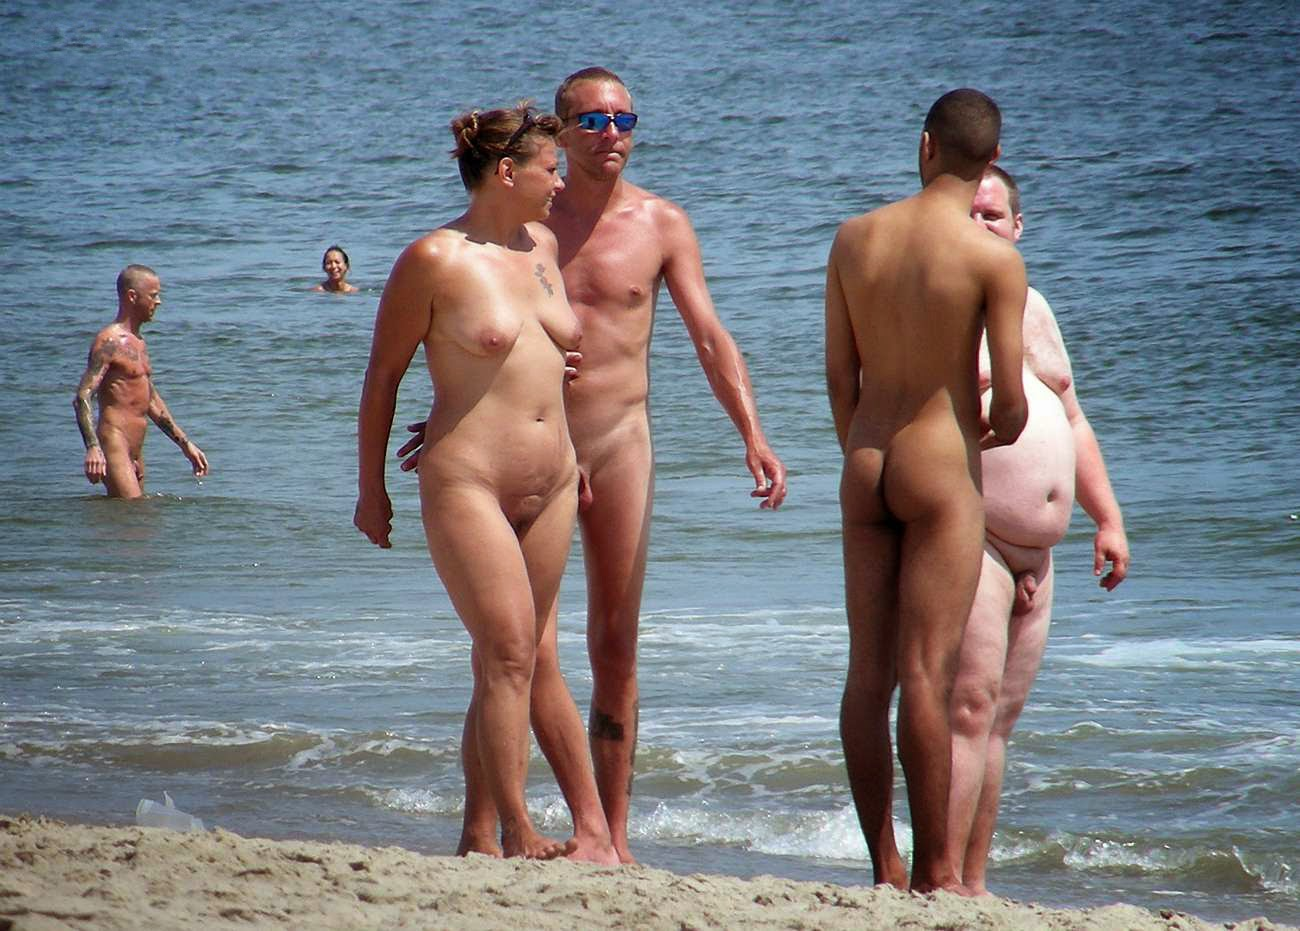 Opinion, Family nudism pic